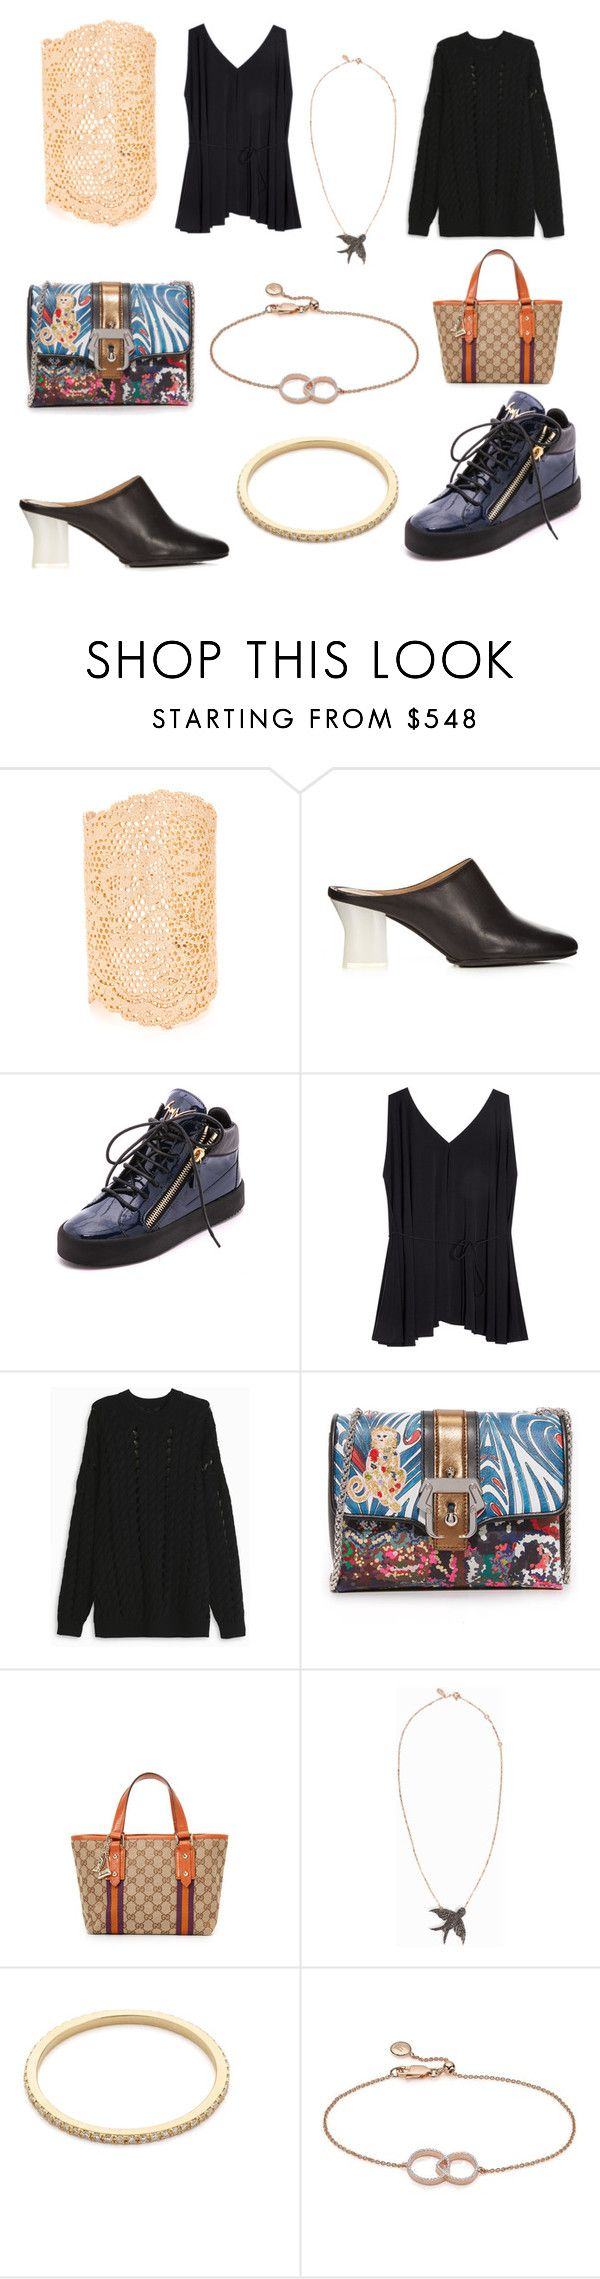 """New Discount sale is on..."" by cate-jennifer ❤ liked on Polyvore featuring Aurélie Bidermann, Giuseppe Zanotti, The Row, Alexander Wang, Paula Cademartori, MAHA LOZI, Gabriela Artigas, Monica Vinader and vintage"